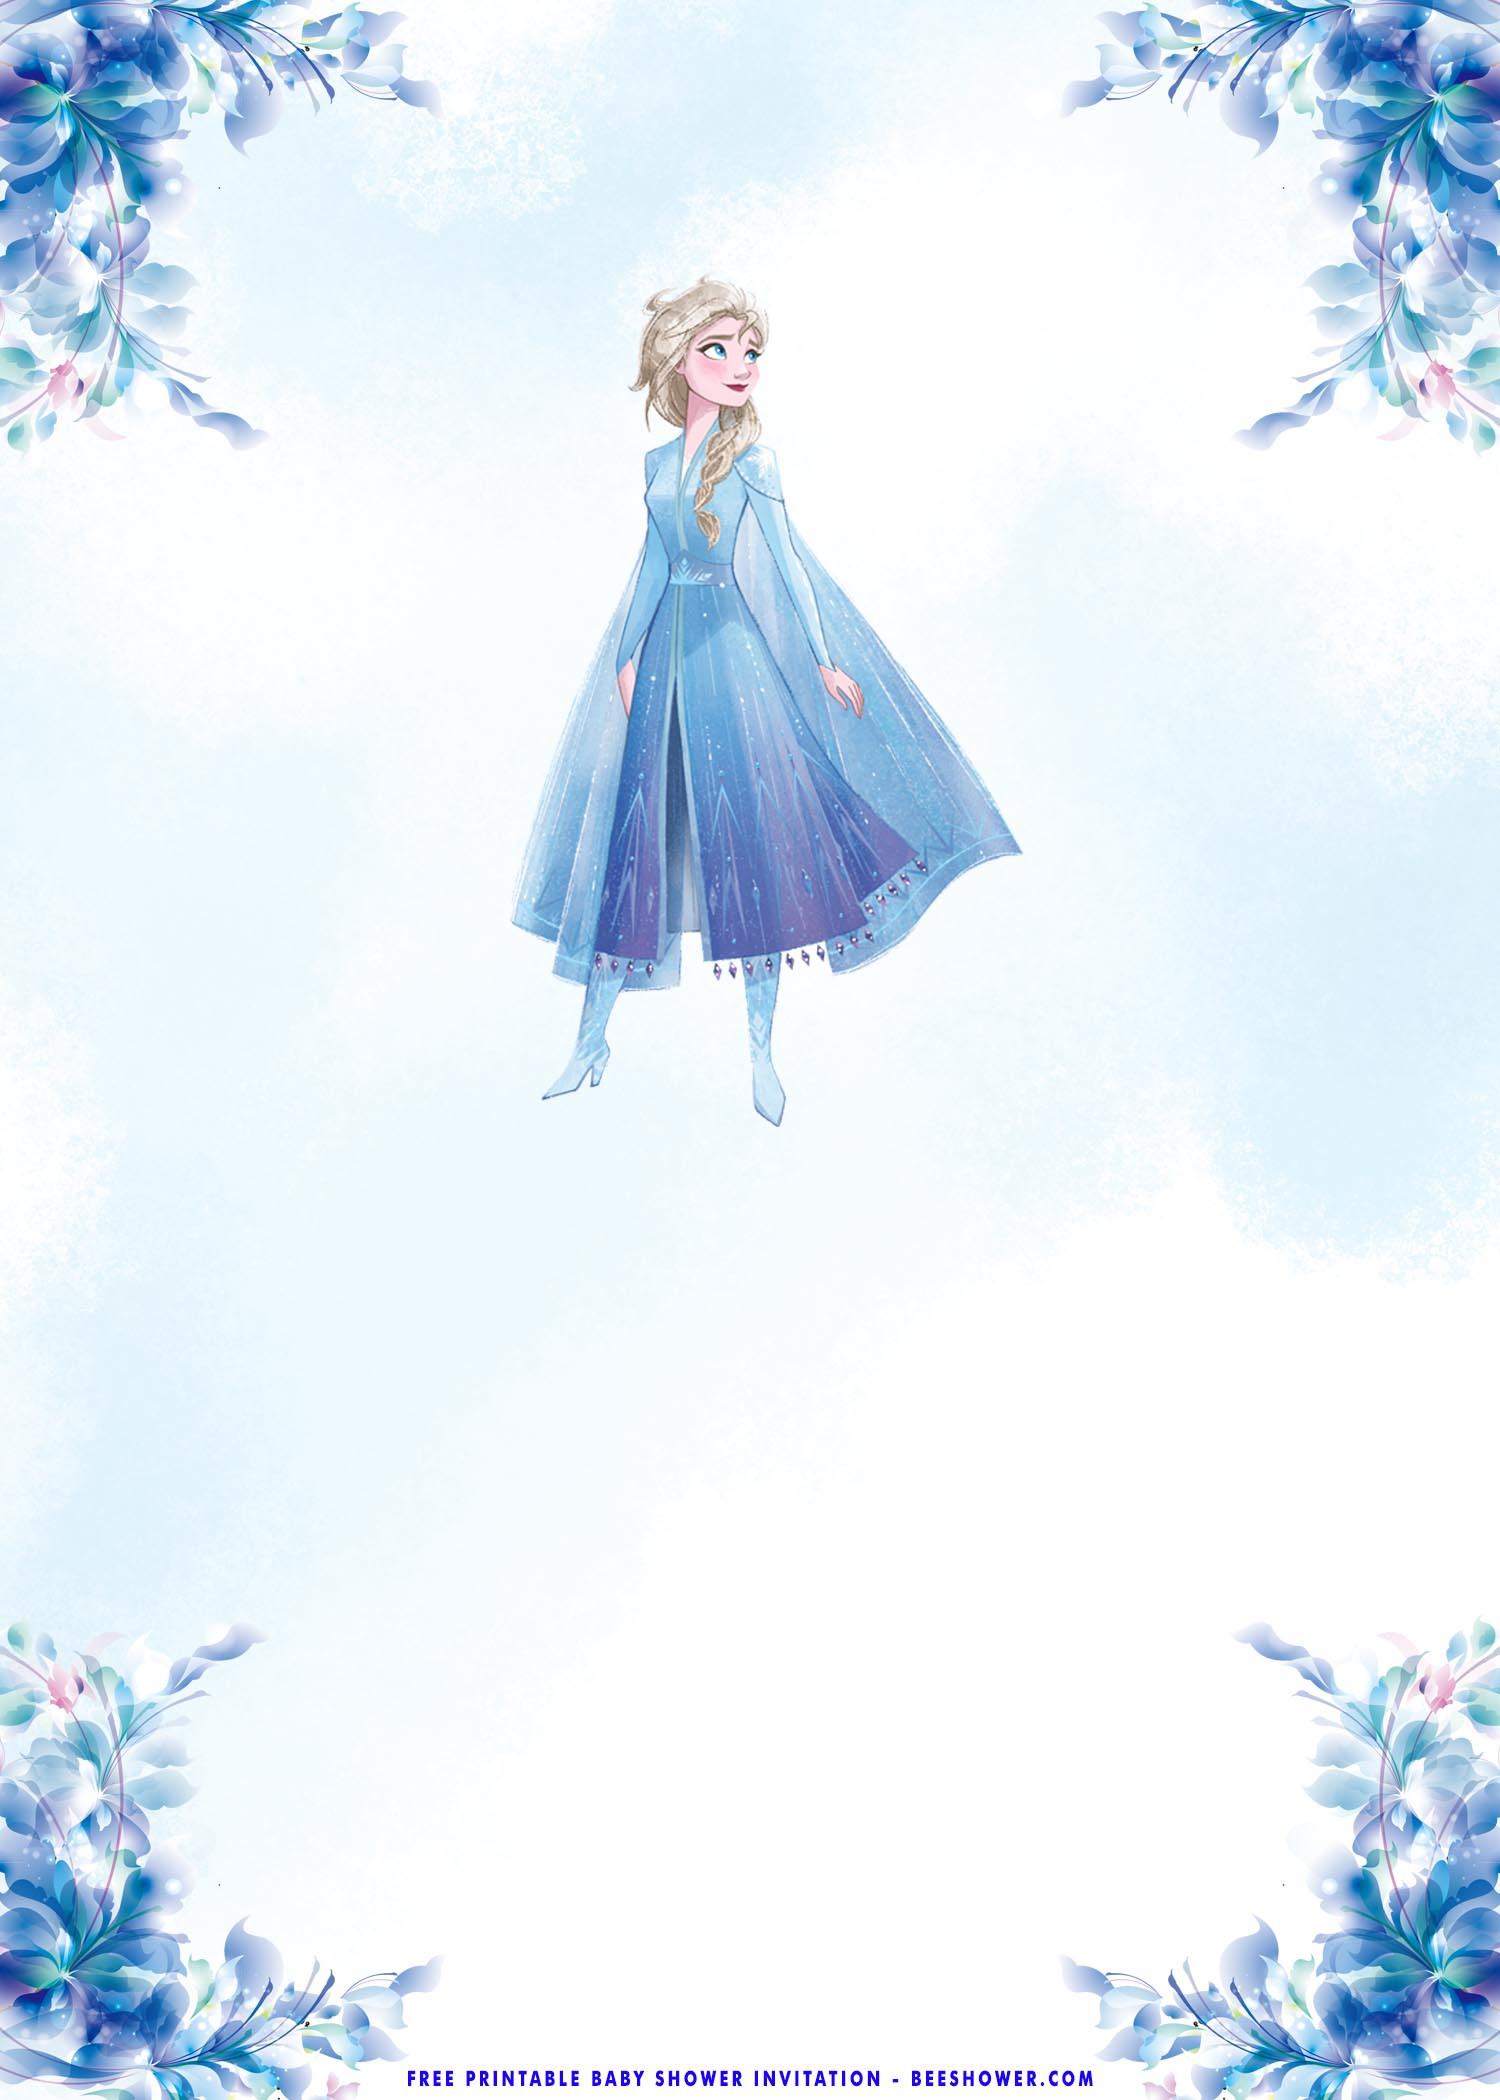 Frozen Invite Printable Free Printable – Frozen Elsa Baby Shower Invitation